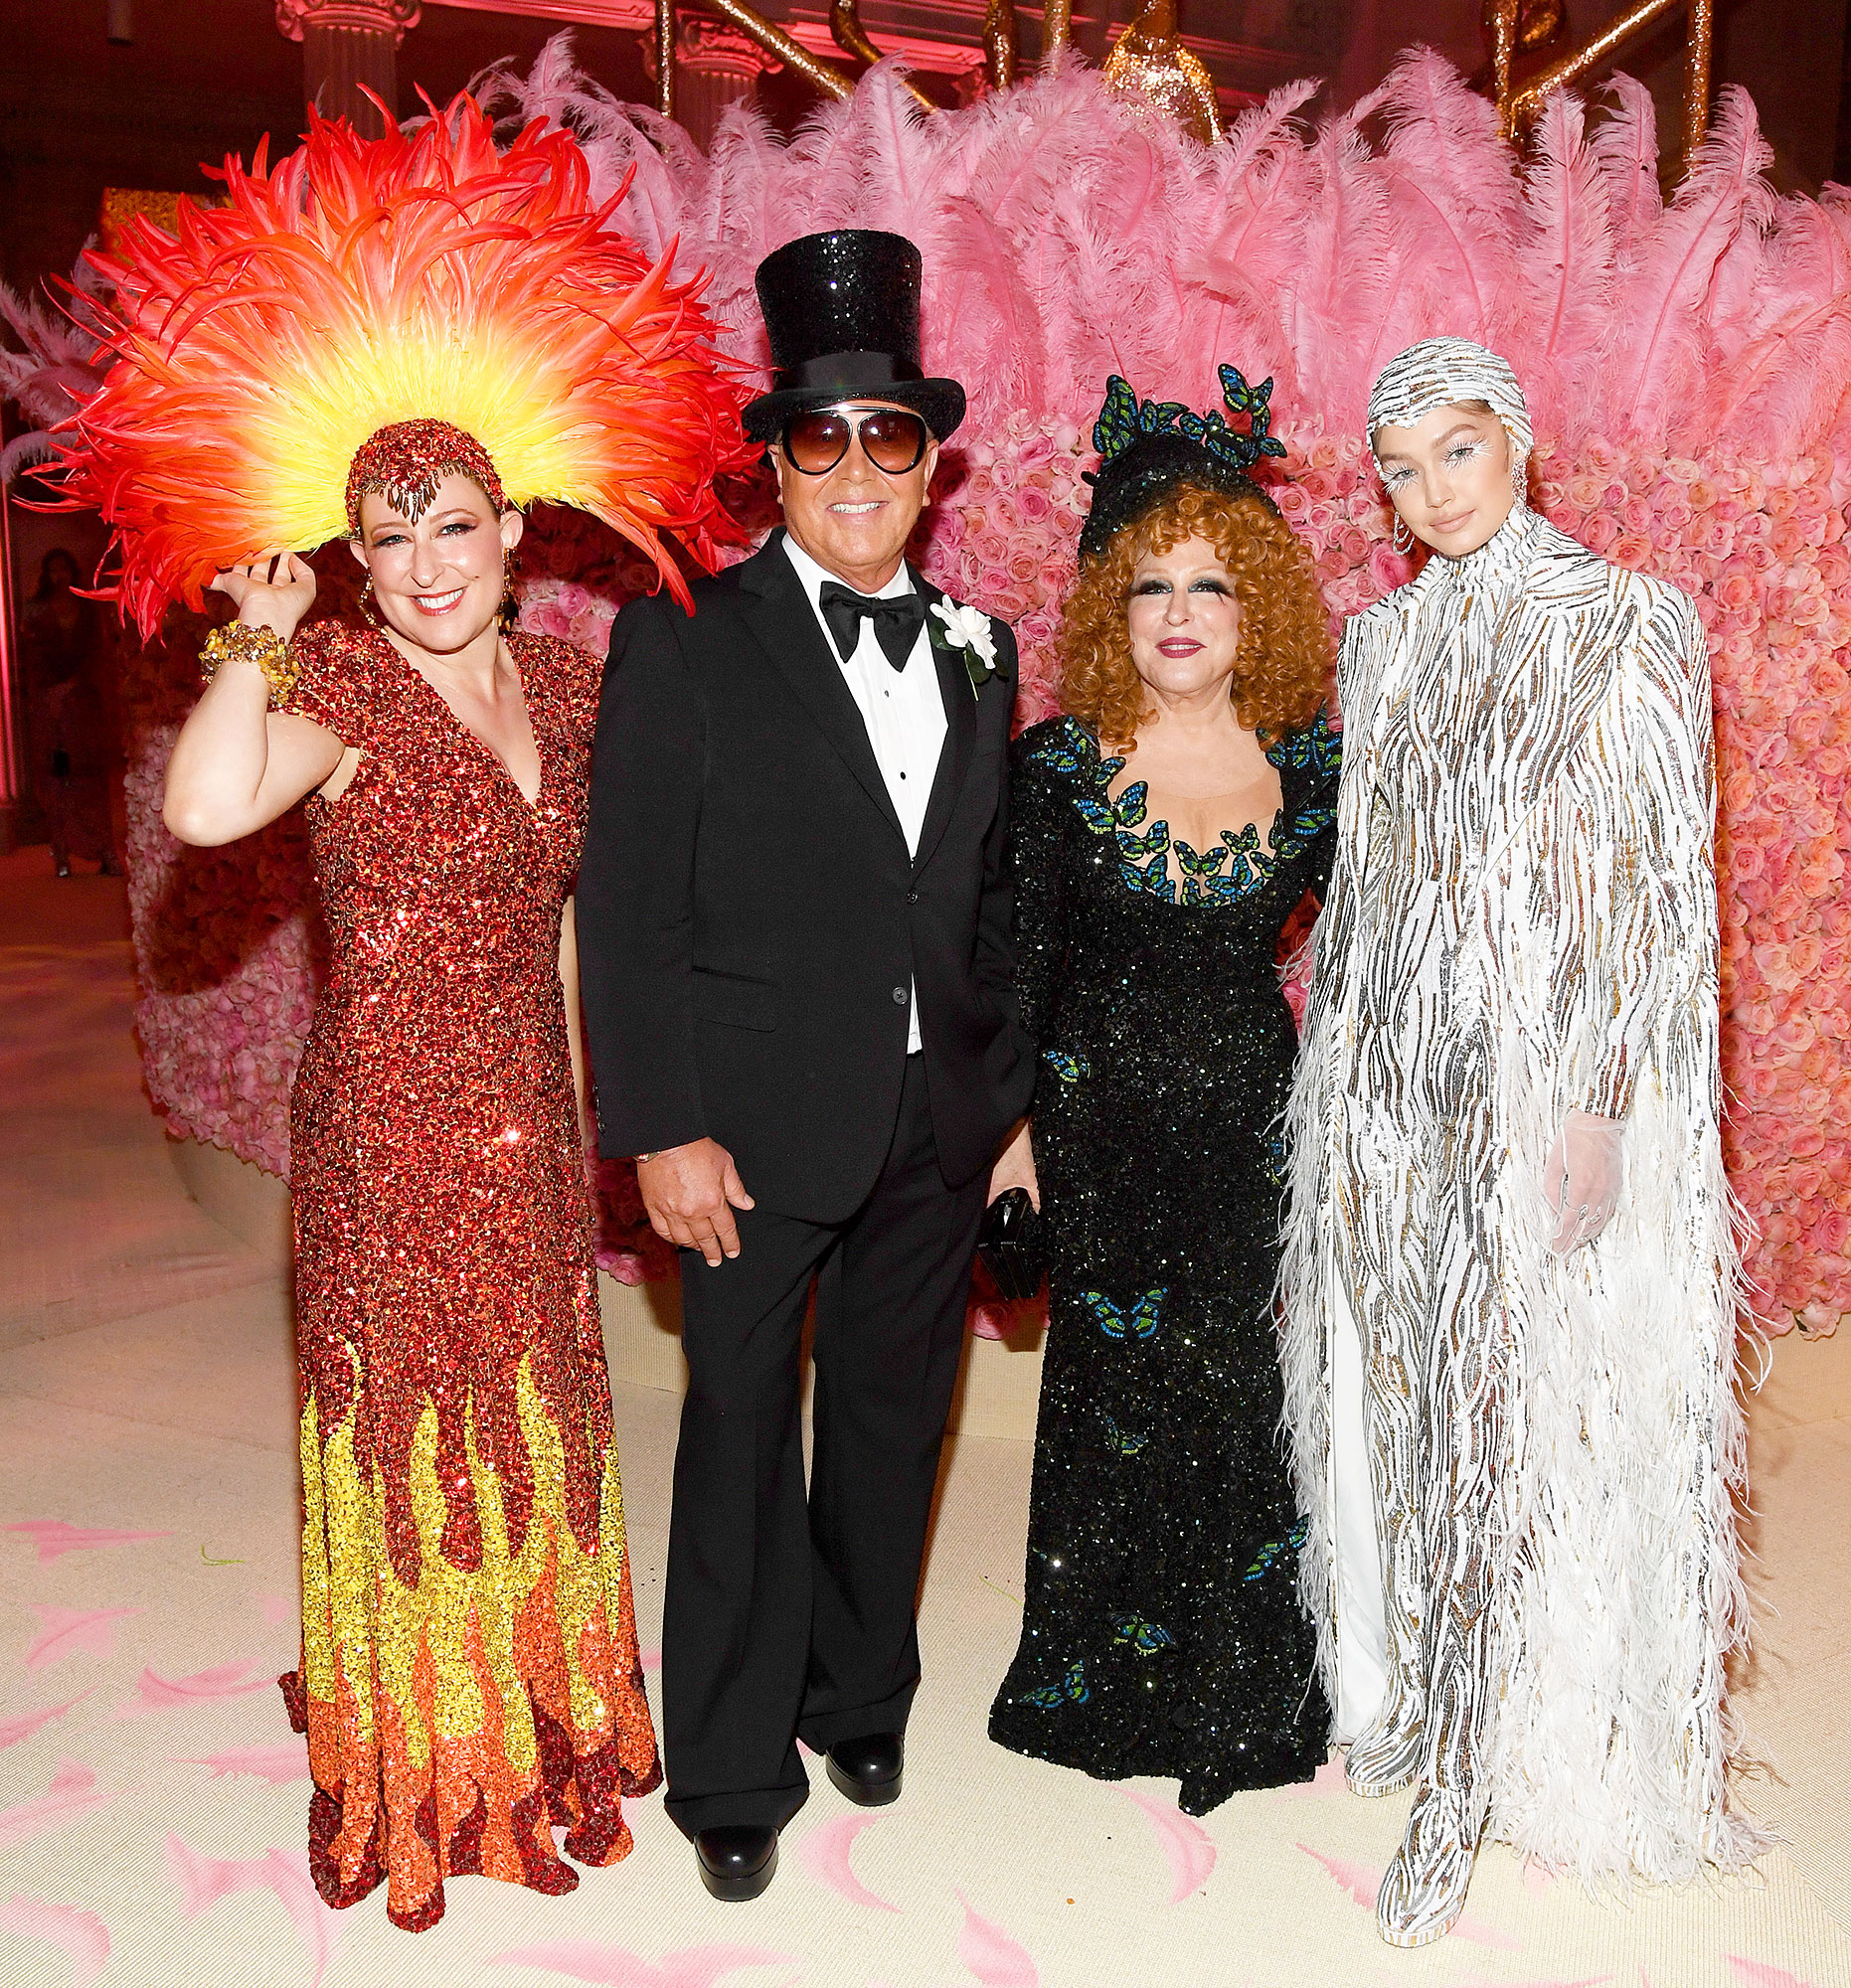 Met Gala 2019 What You Didnt See Sophie Von Haselberg Michael Kors Bette Midler Gigi Hadid - Sophie Von Haselberg , Michael Kors, Bette Midler and Gigi Hadid posed for an iconic snap.